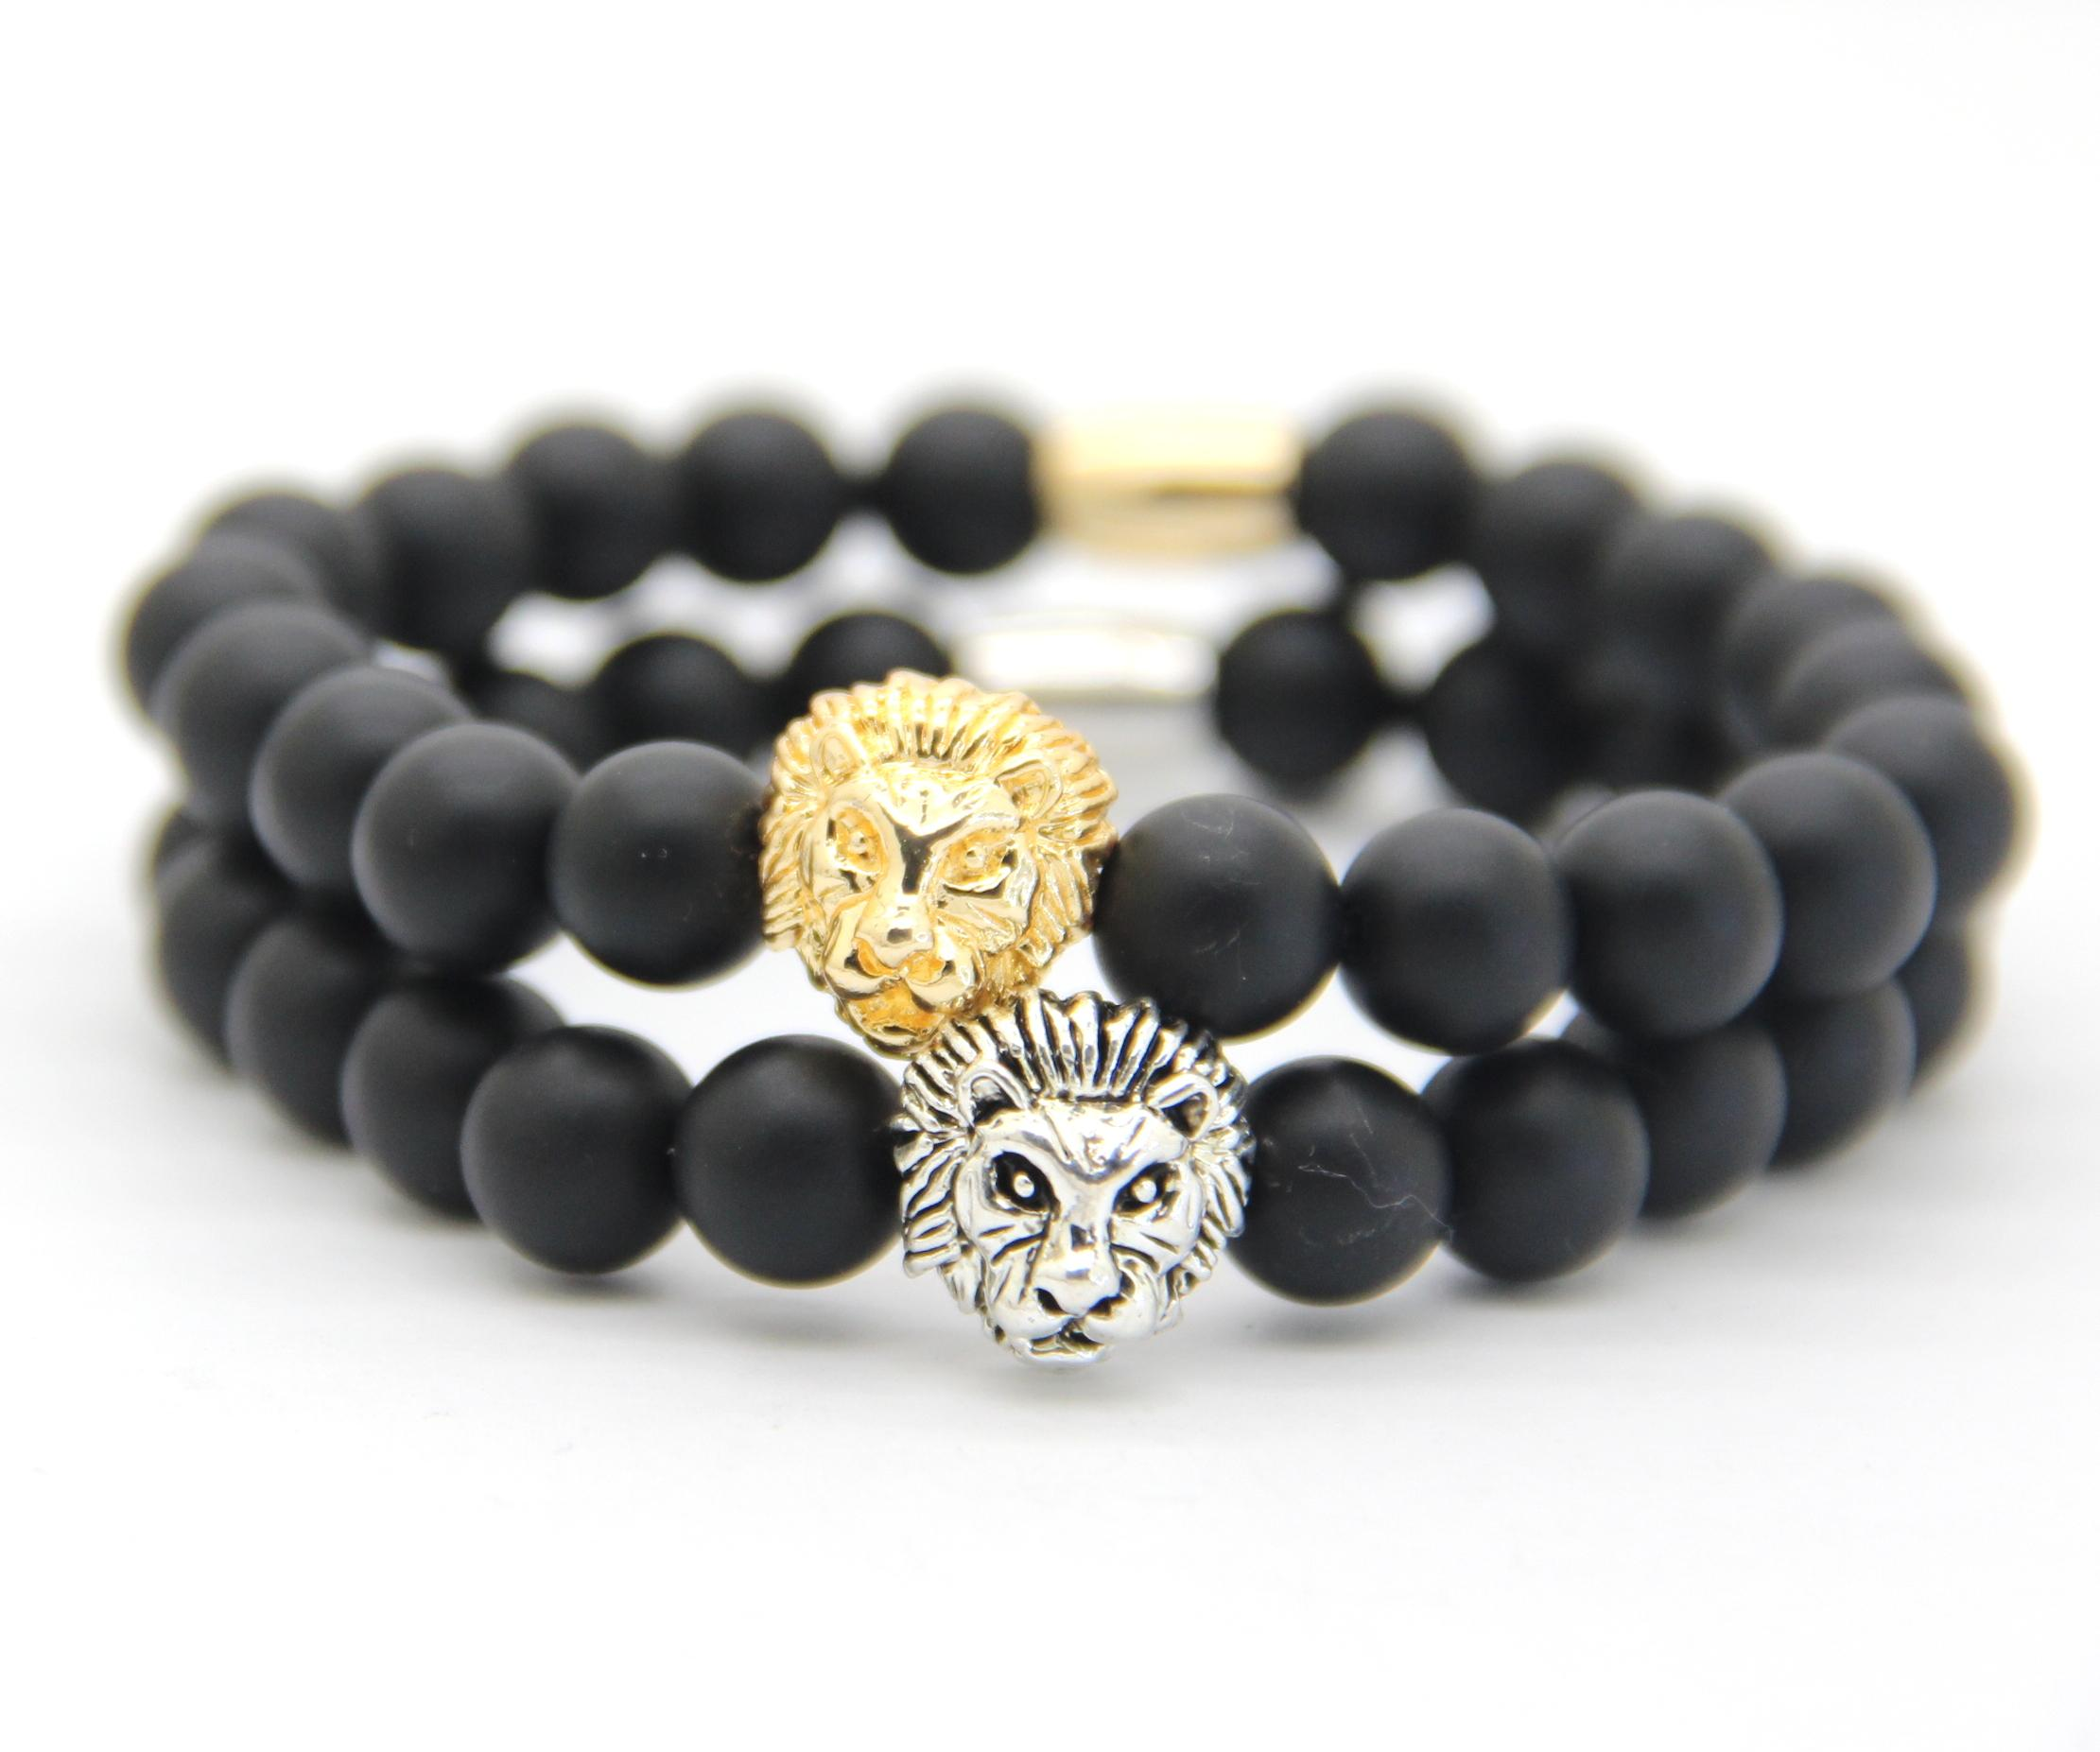 jewelry natural for silver beads bead shop picsart lava agate plated made bracelet obsidian men charm stone chiki unique with custom chain skull